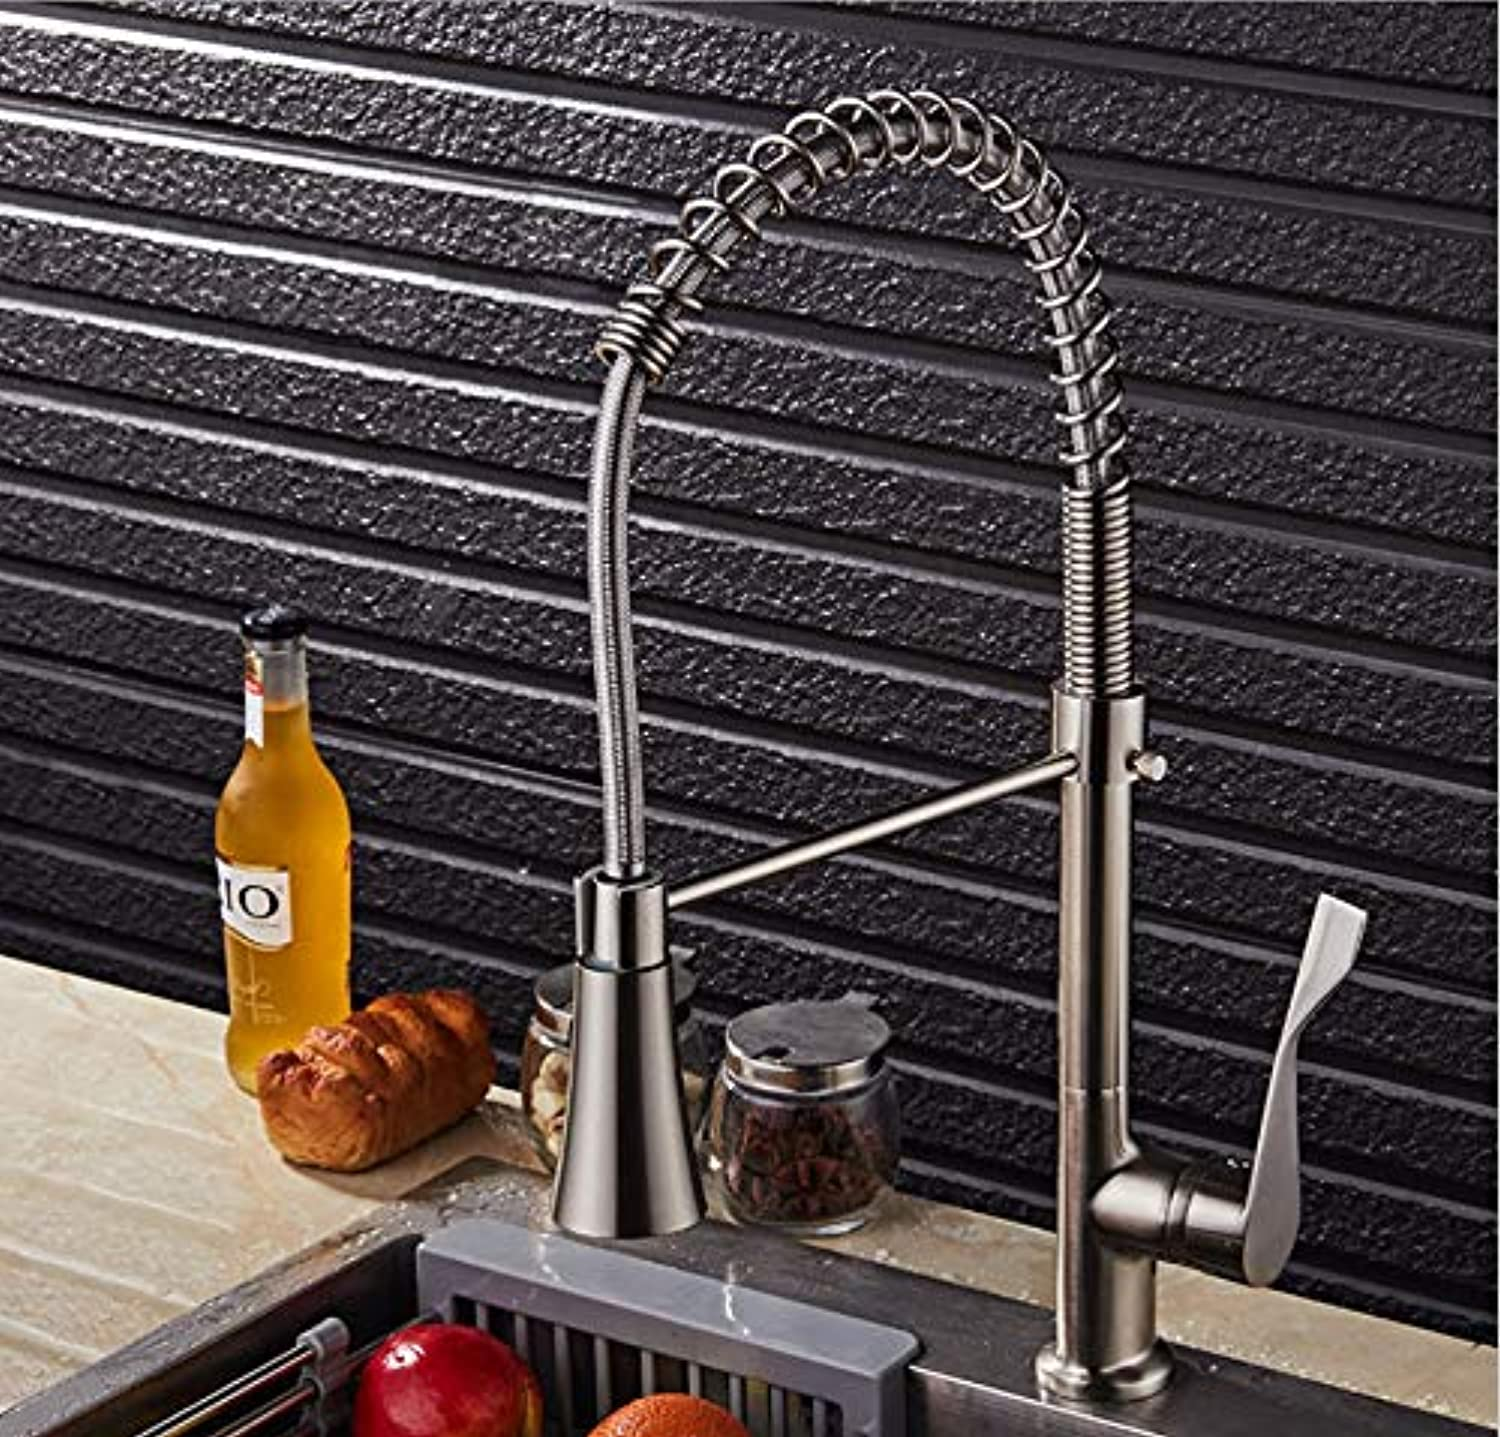 ROKTONG Faucet ?Brushed Hot Springs Foreign Trade redatable Hot And Cold Water Faucet Kitchen Sink Faucet